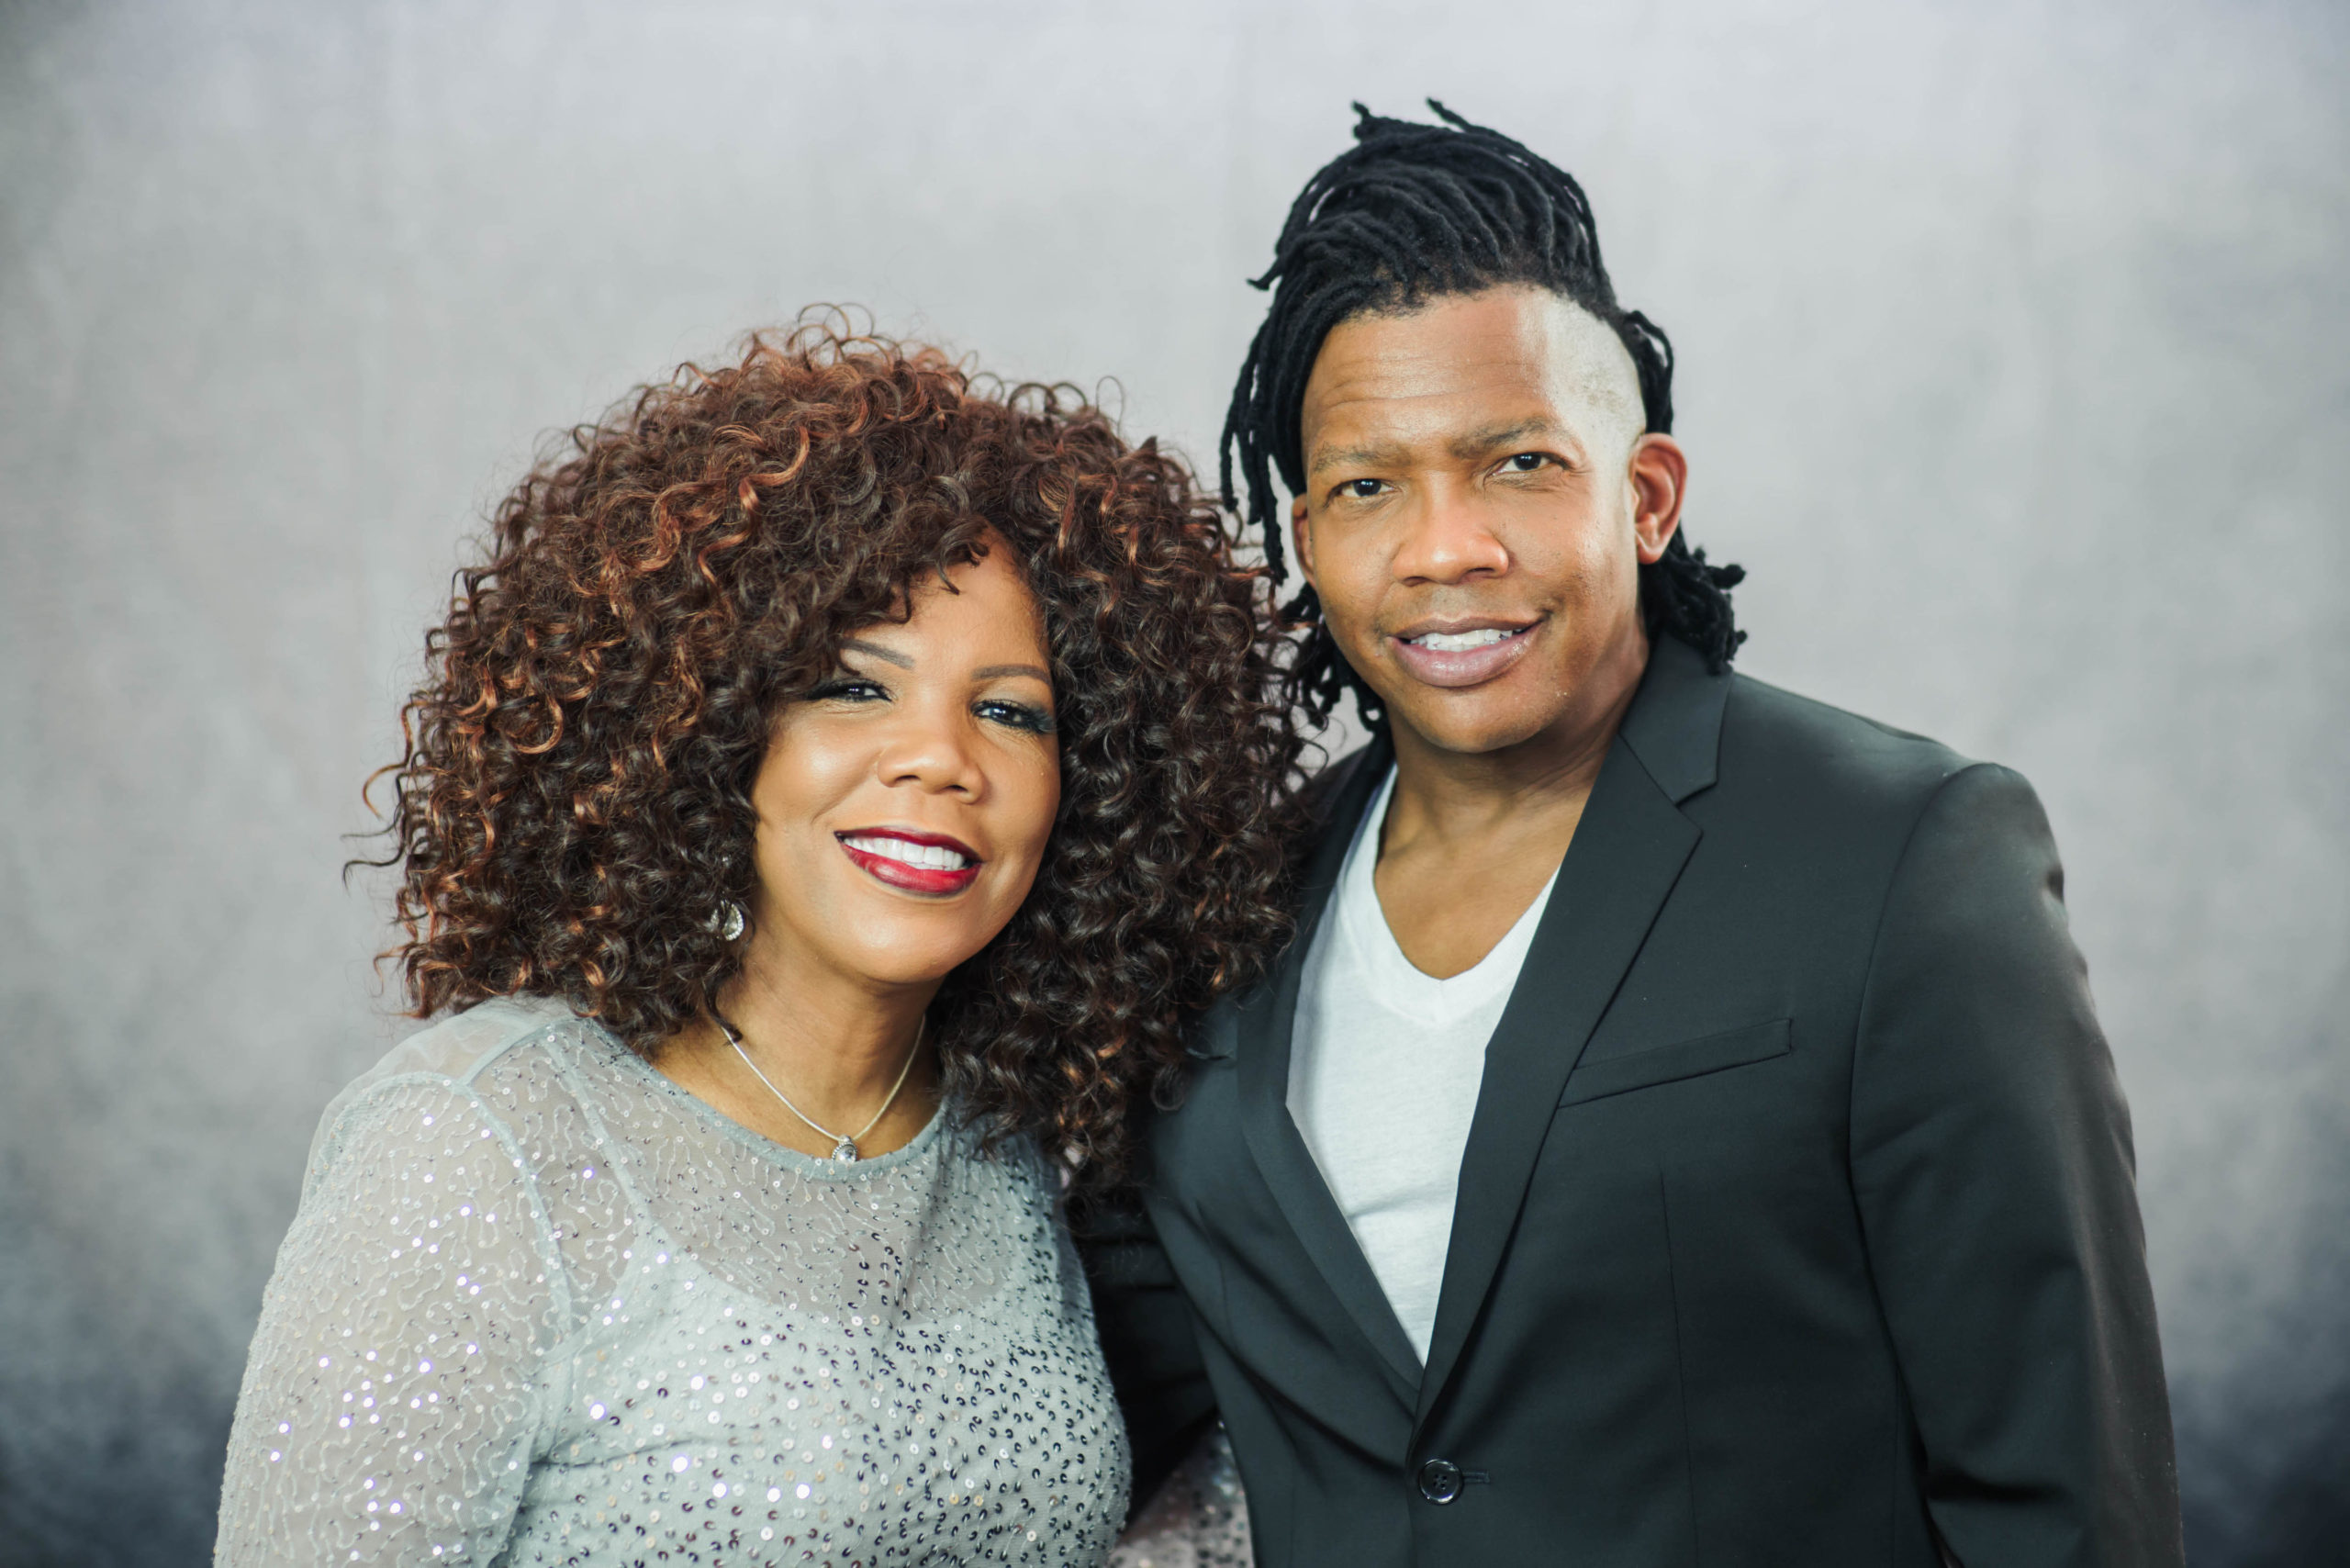 LYNDA RANDLE AND MICHAEL TAIT SPREAD VIRTUAL YULETIDE CHEER WITH 'TOGETHER FOR CHRISTMAS IN JULY'